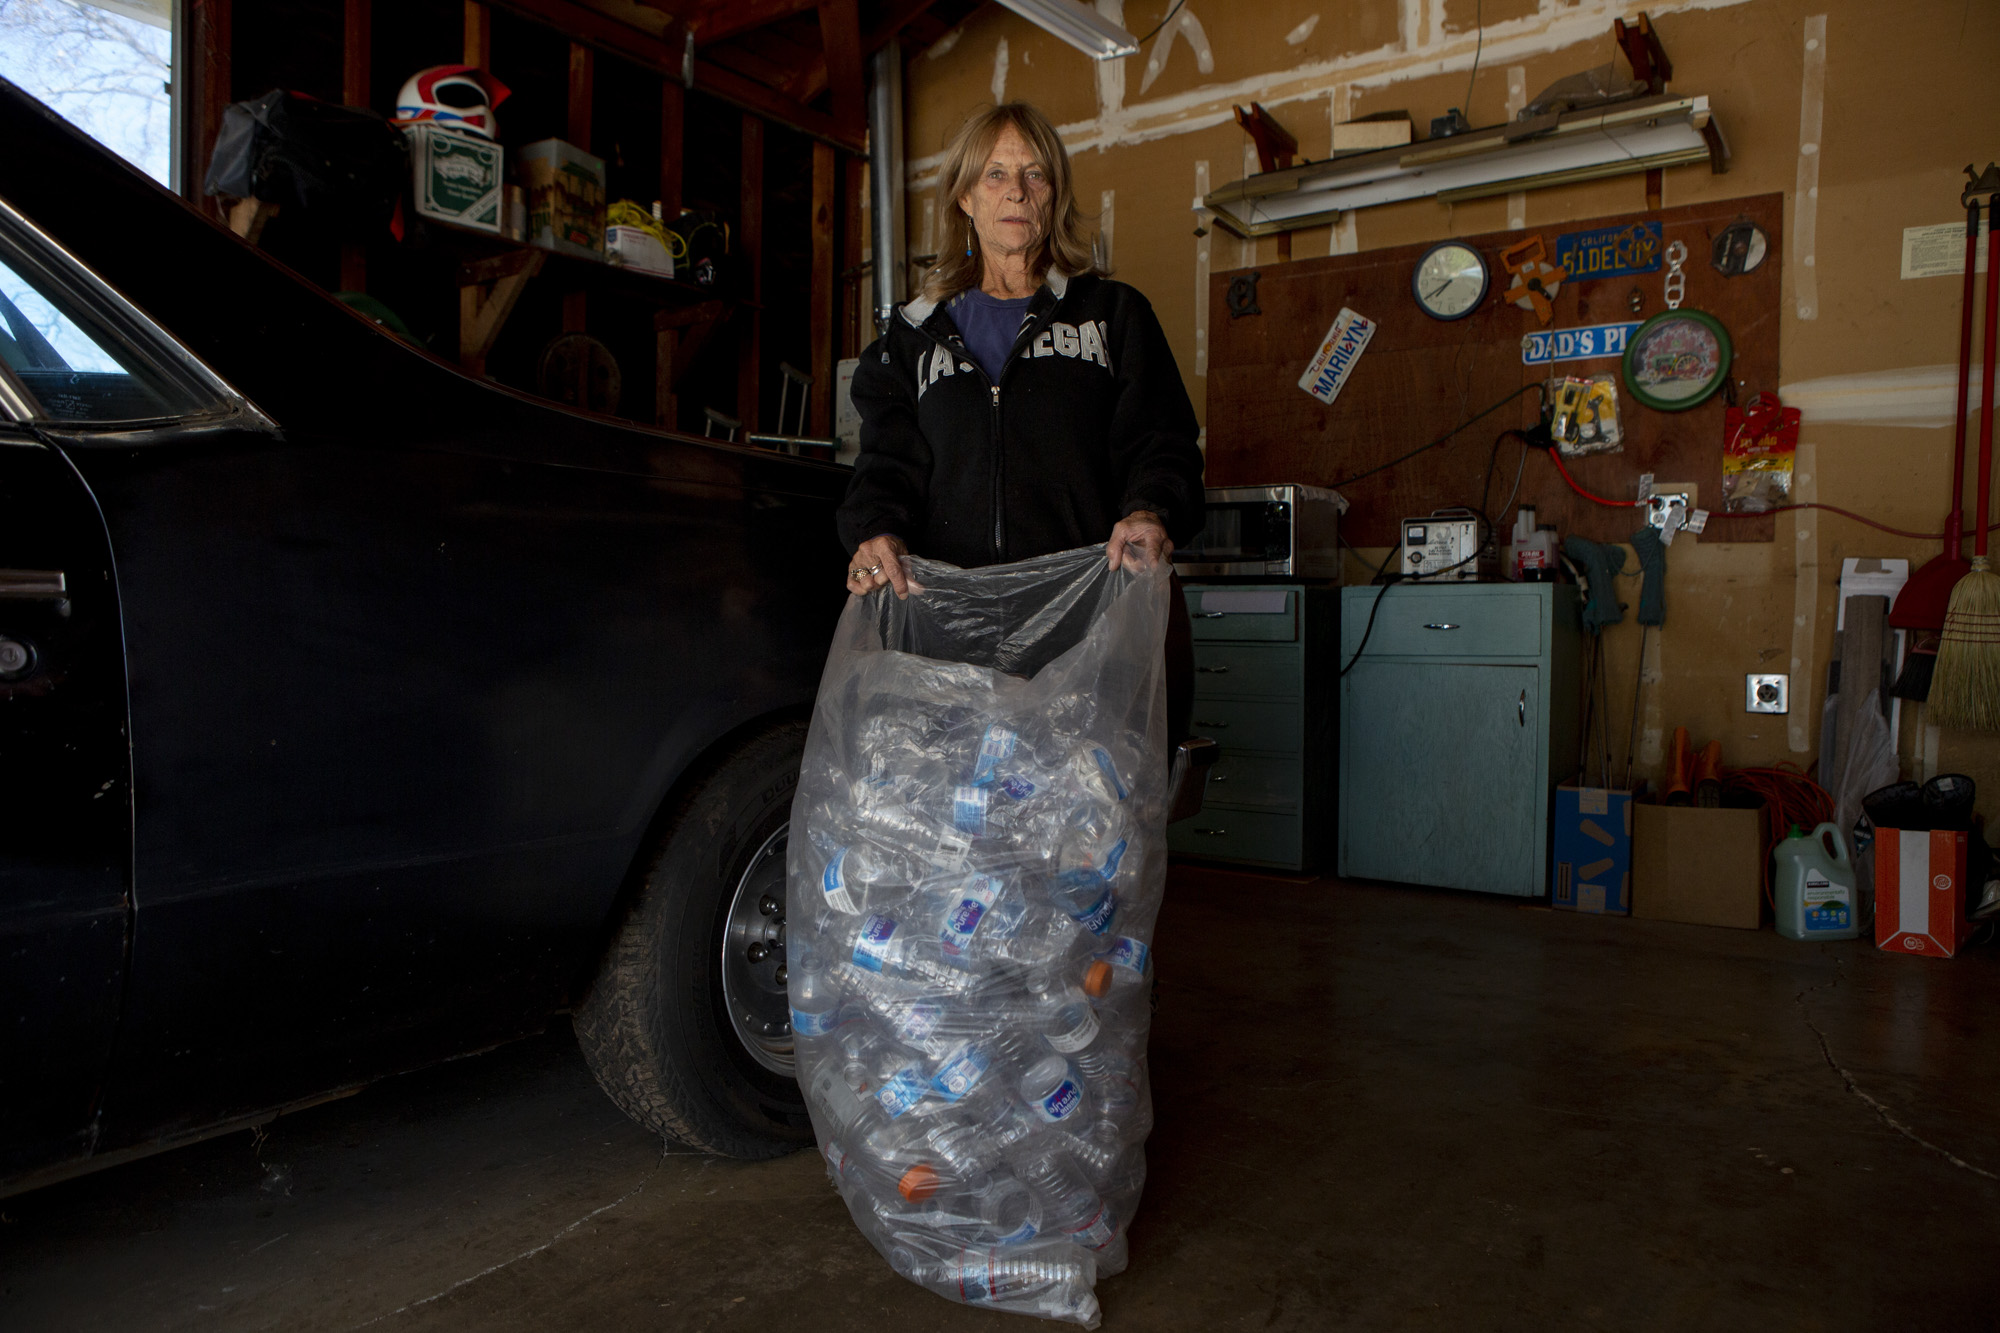 Paradise resident Marilyn Adams in her garage with a bag of plastic water bottles. Photo by Anne Wernikoff, CalMatters